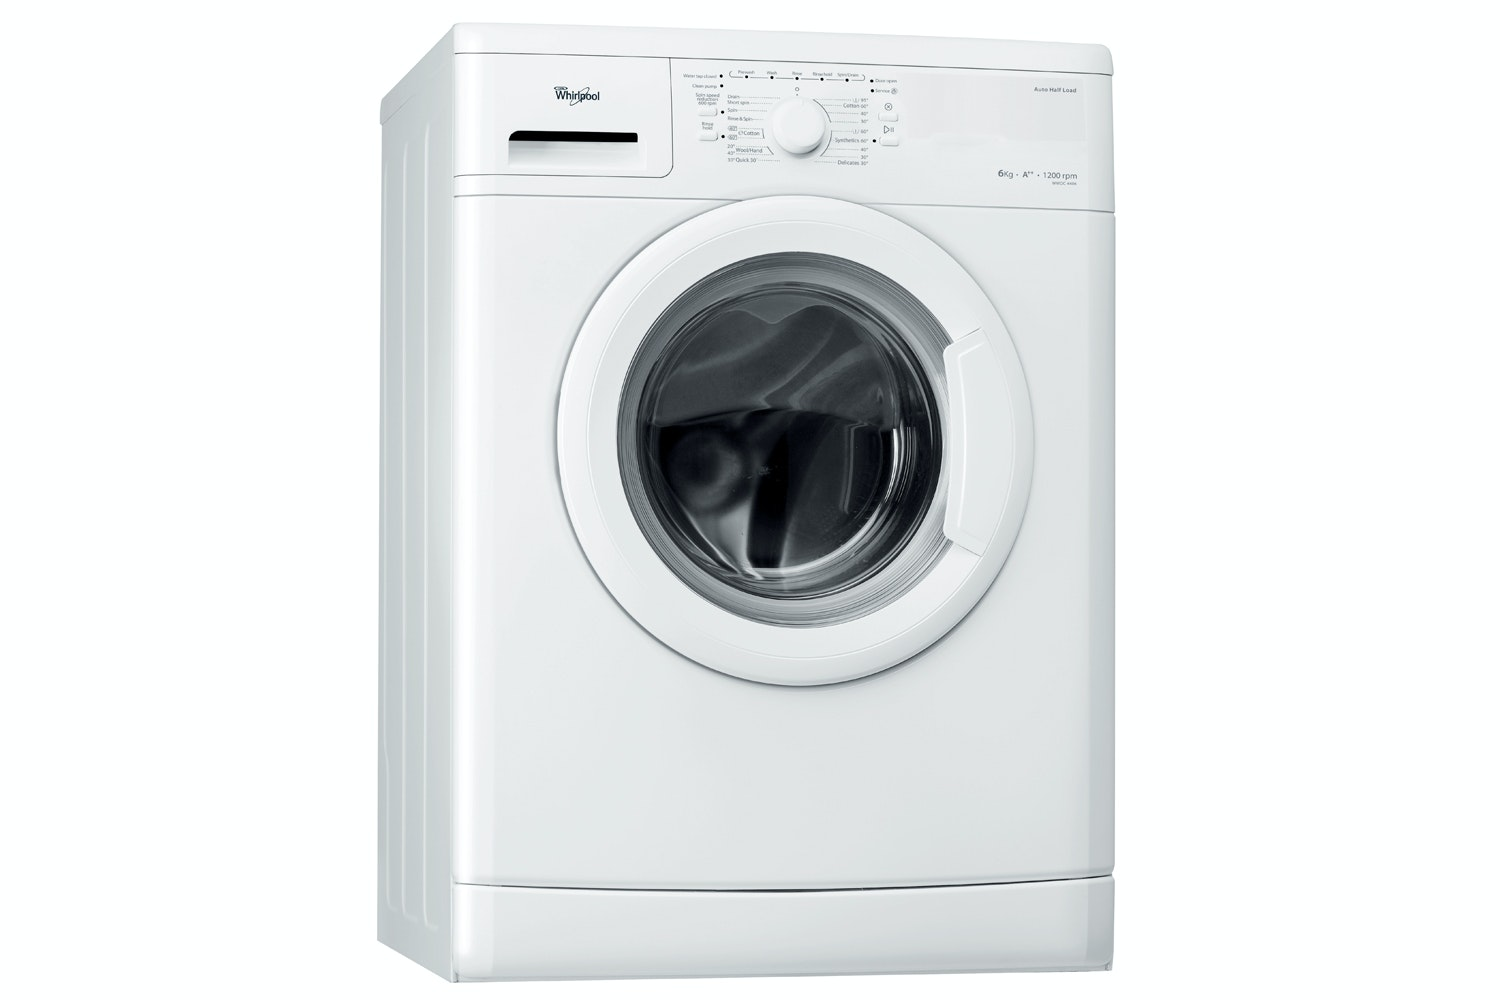 Whirlpool 6kg Washing Machine | WWDC4406